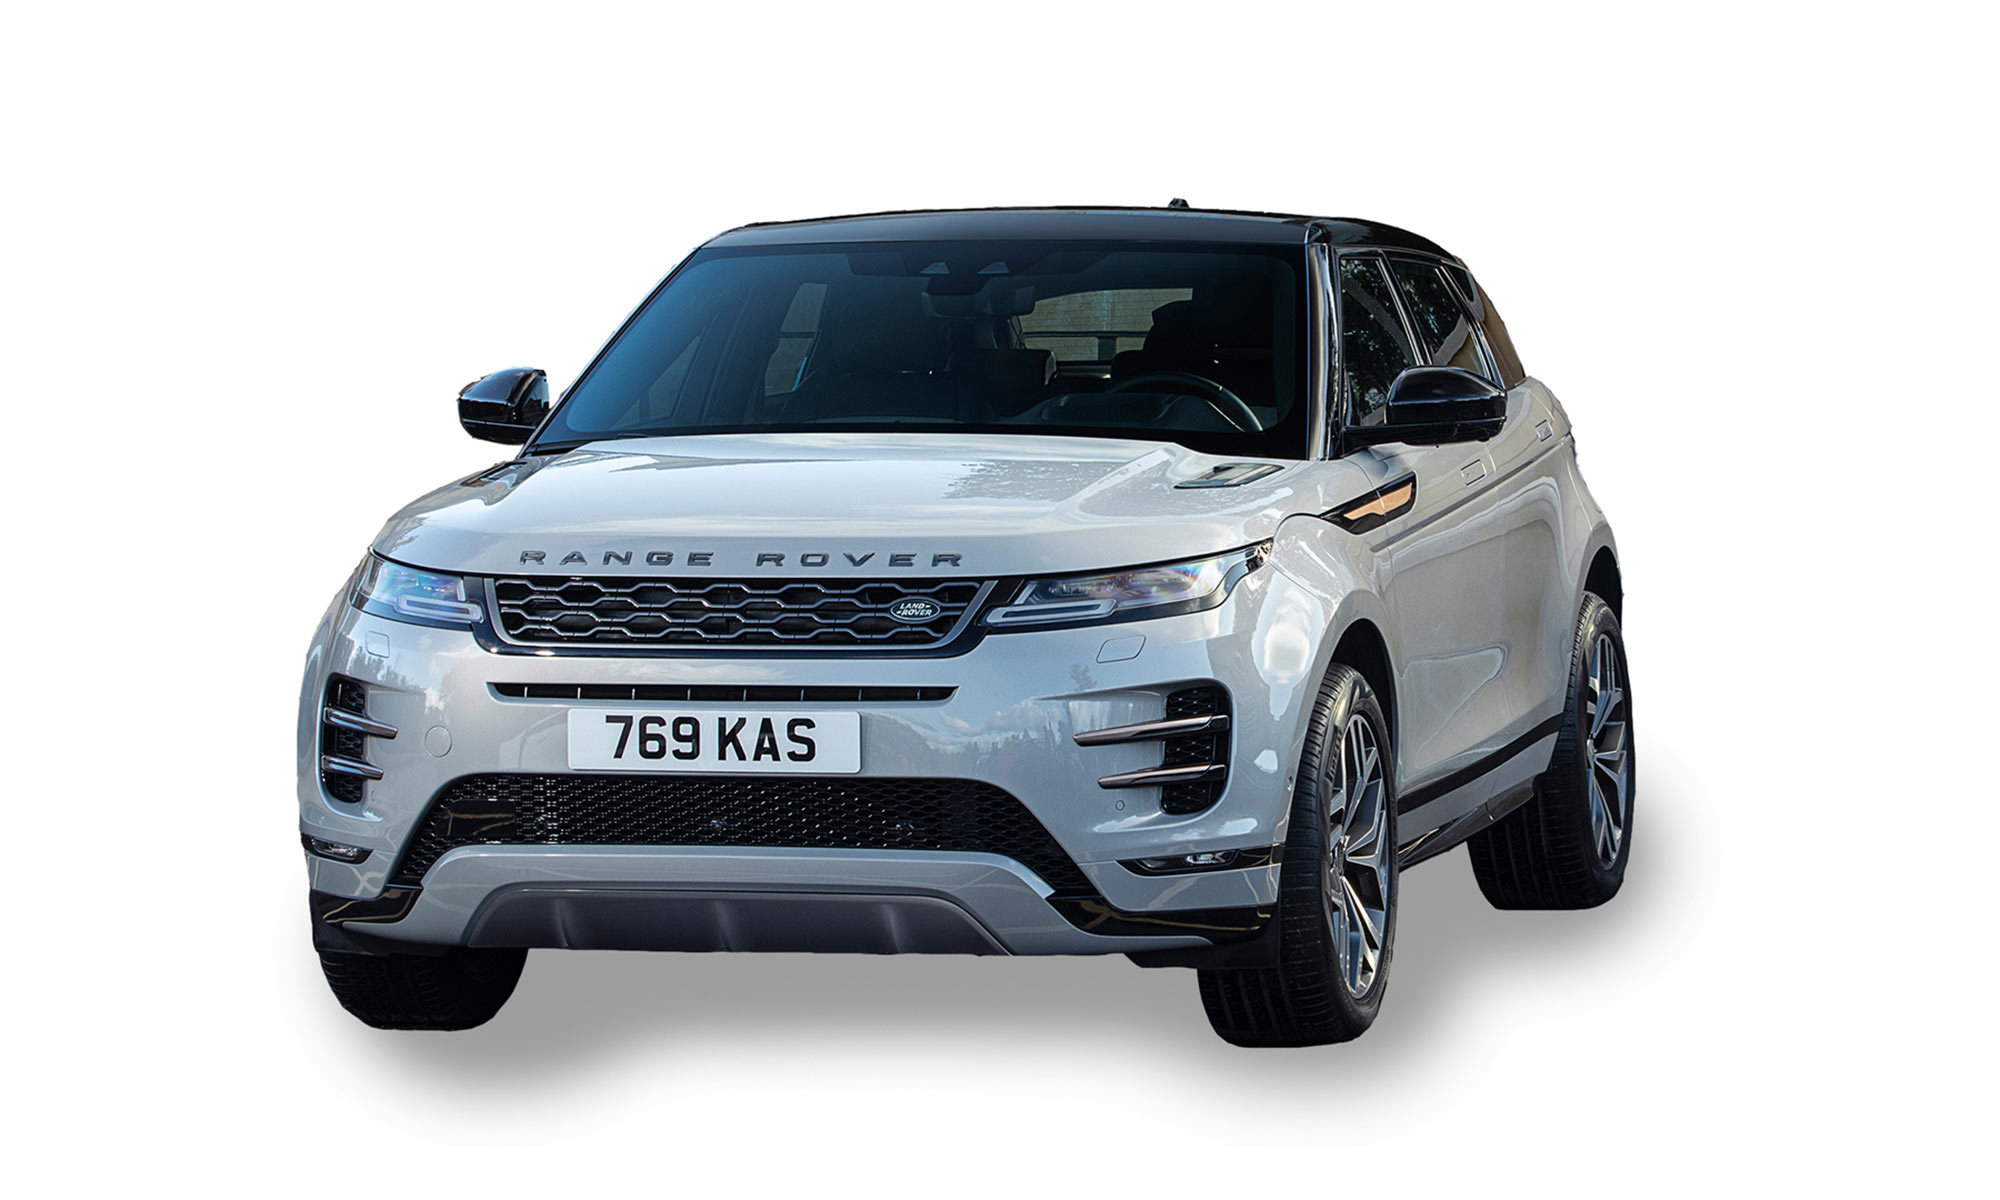 Jlr Range Rover Evoque White Background